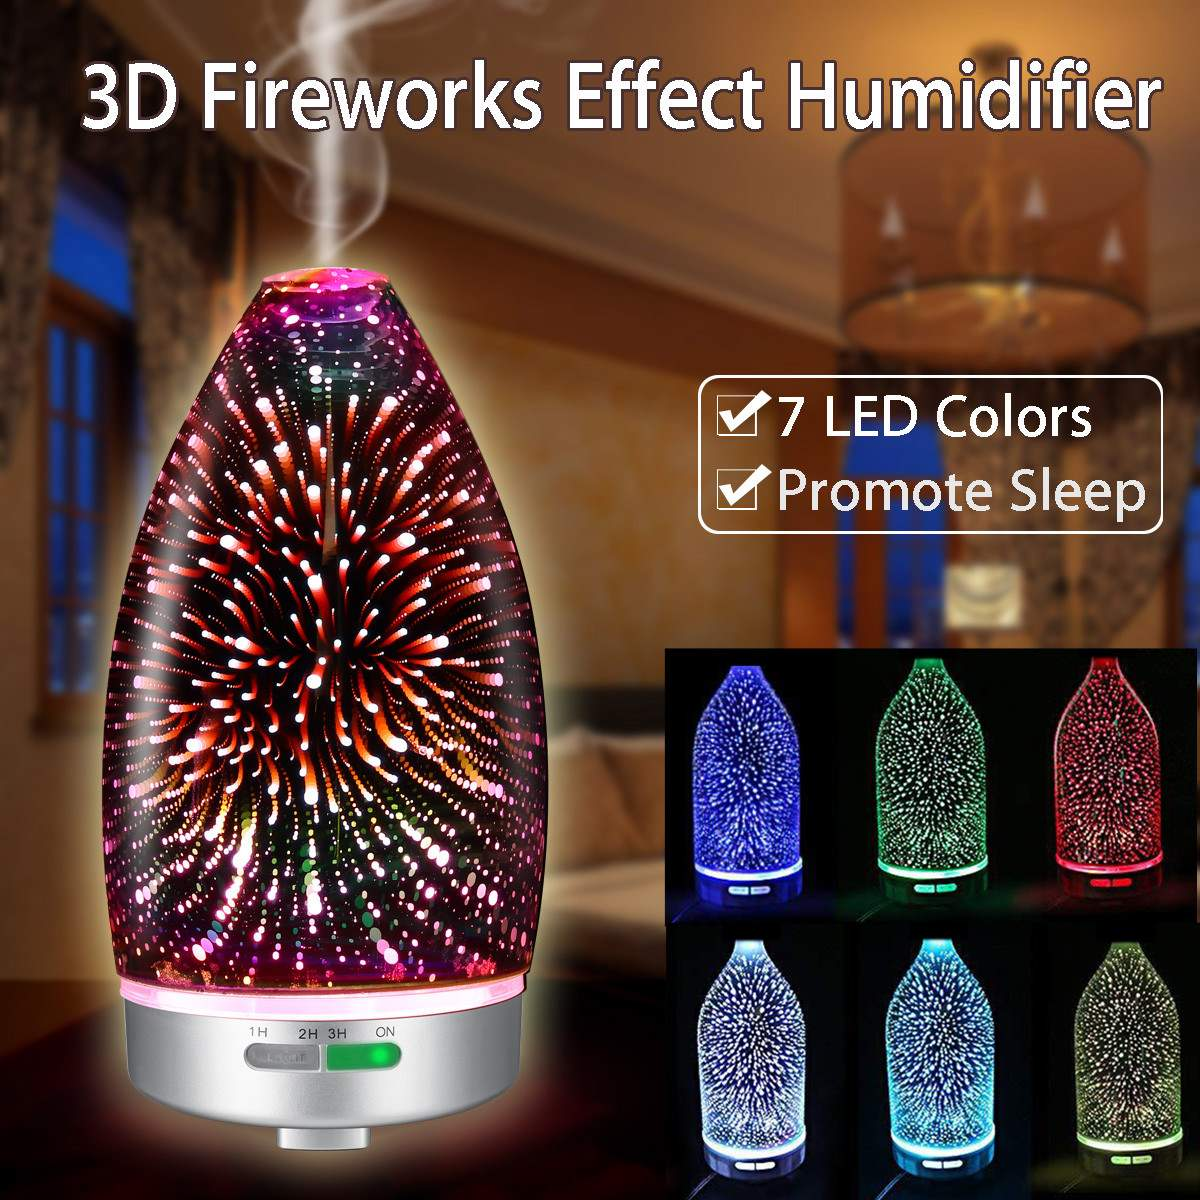 3D Fireworks LED Night Light Air Humidifier Glass Vase Shape Essential Oil Diffuser Mist Maker Ultrasonic Humidifier Gift AU